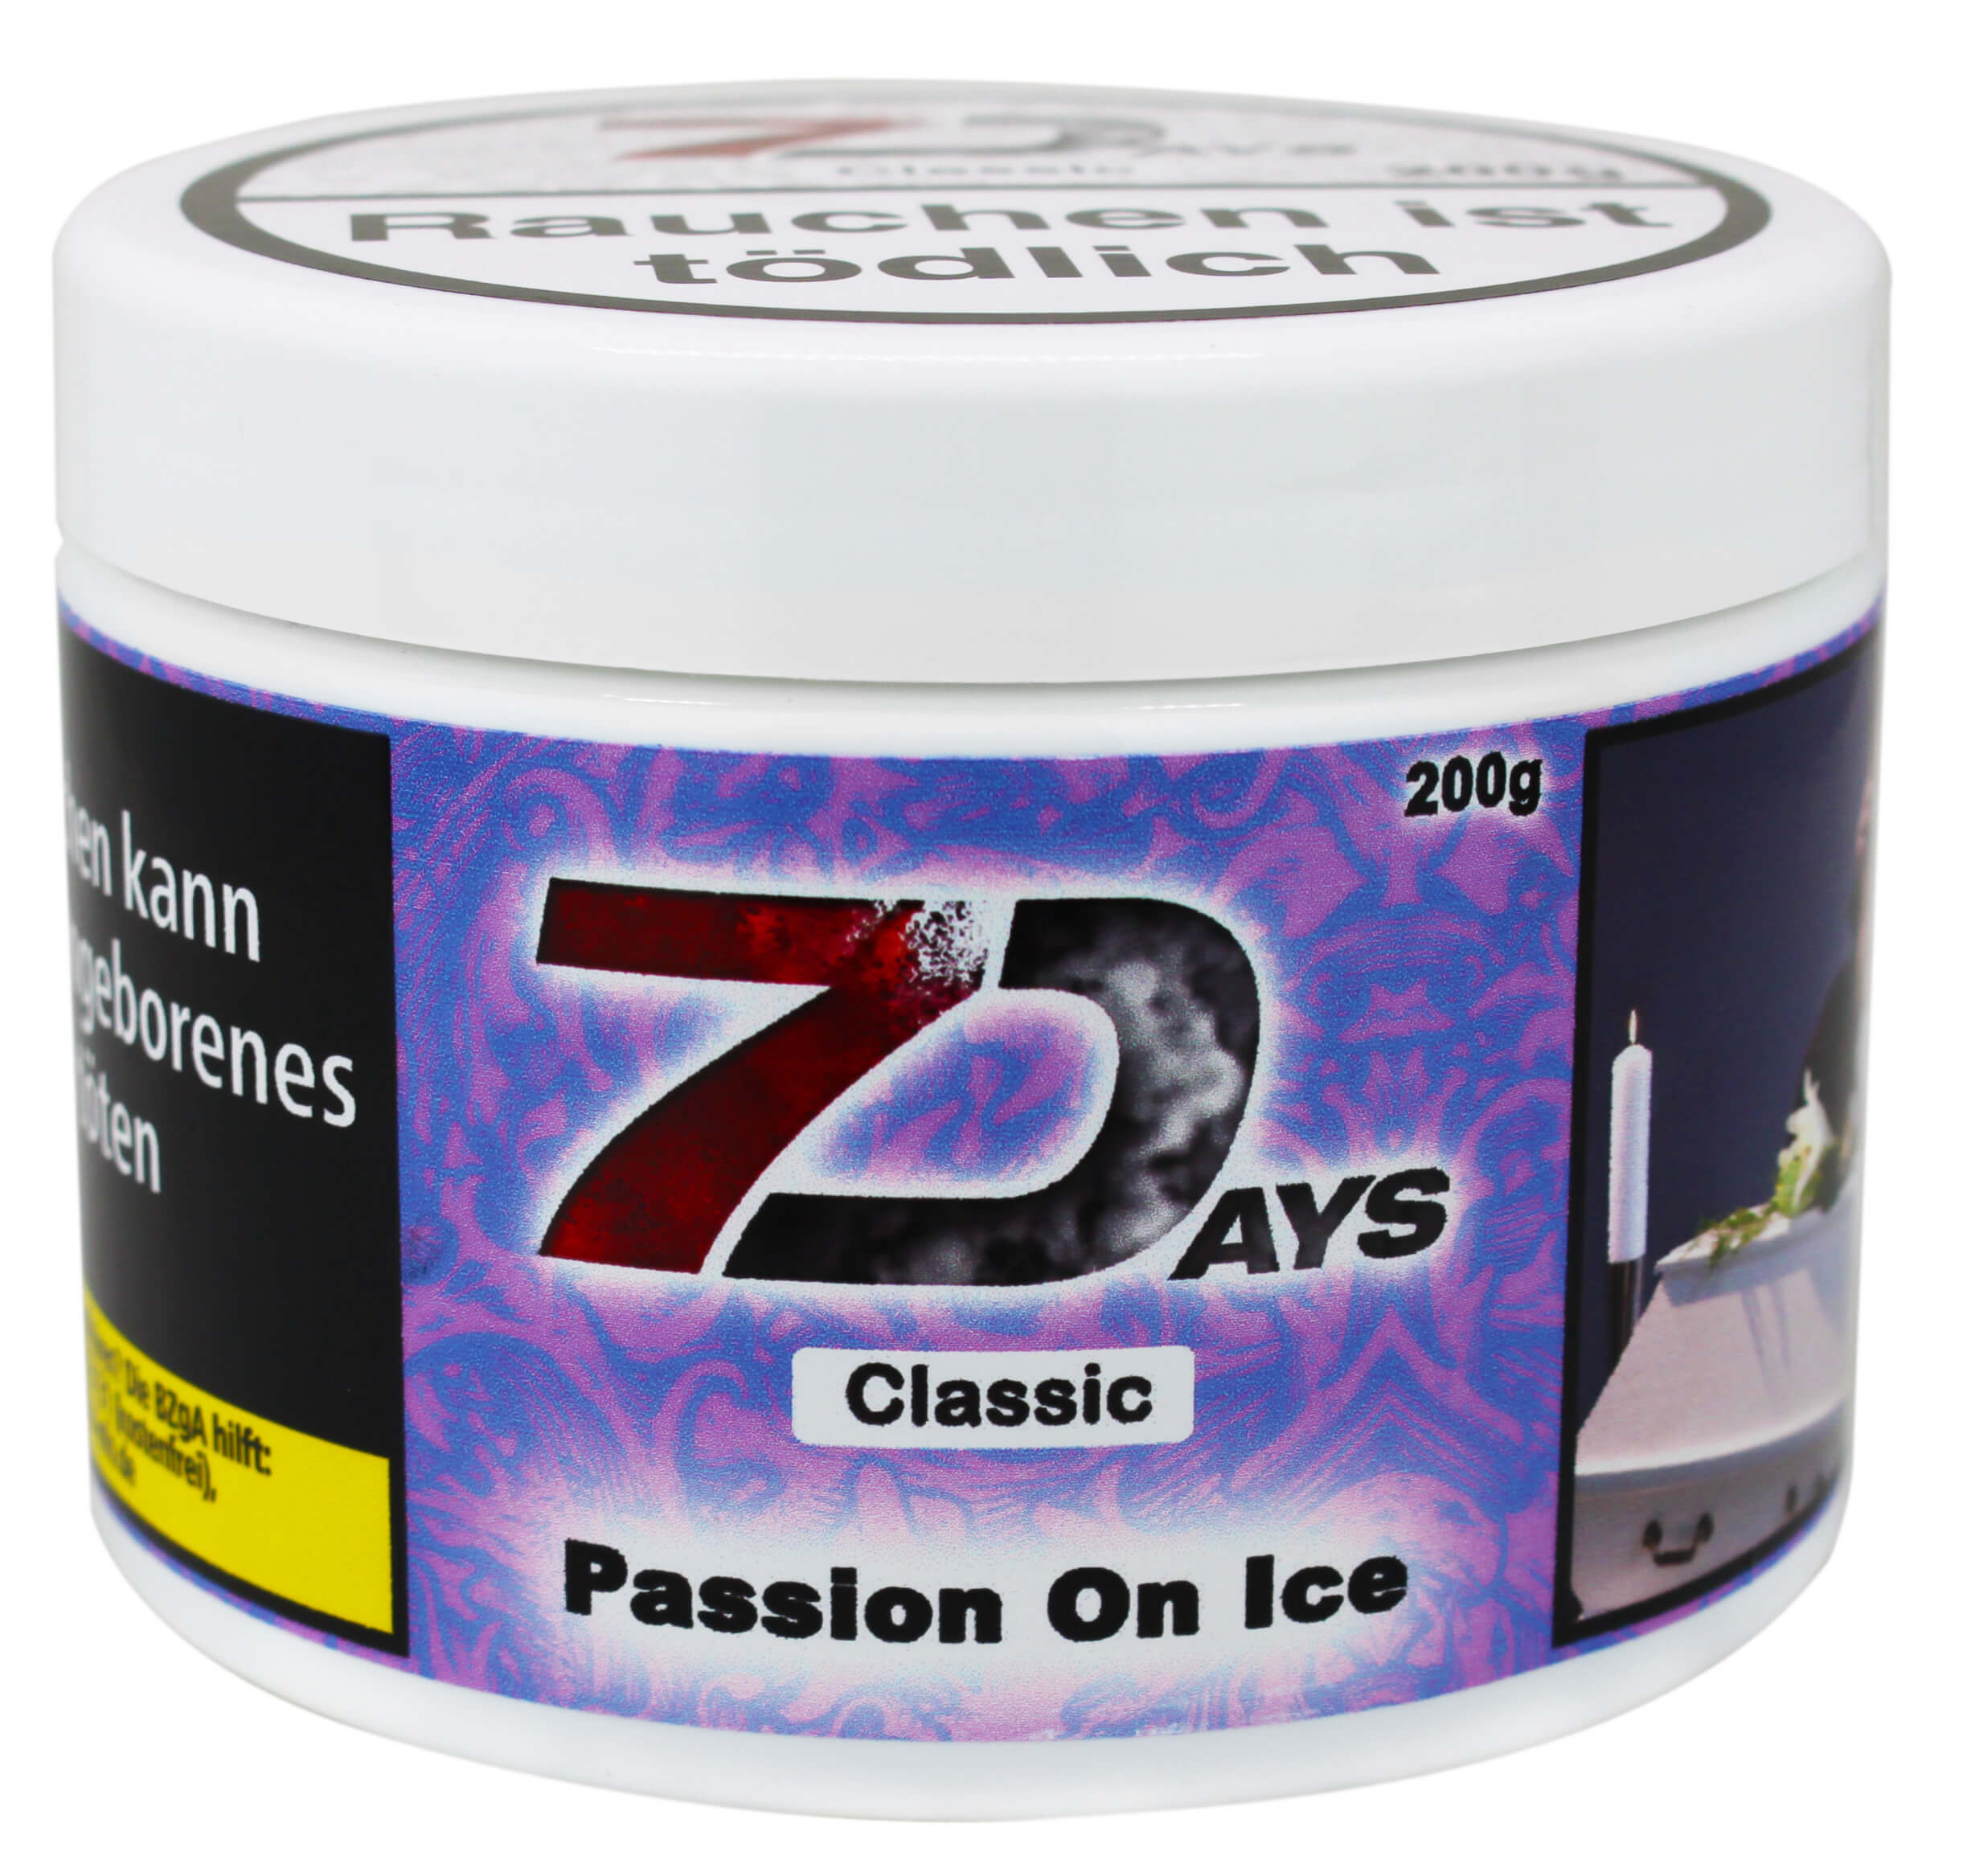 7 Days Tabak - Passion on the Ice Classic 200g